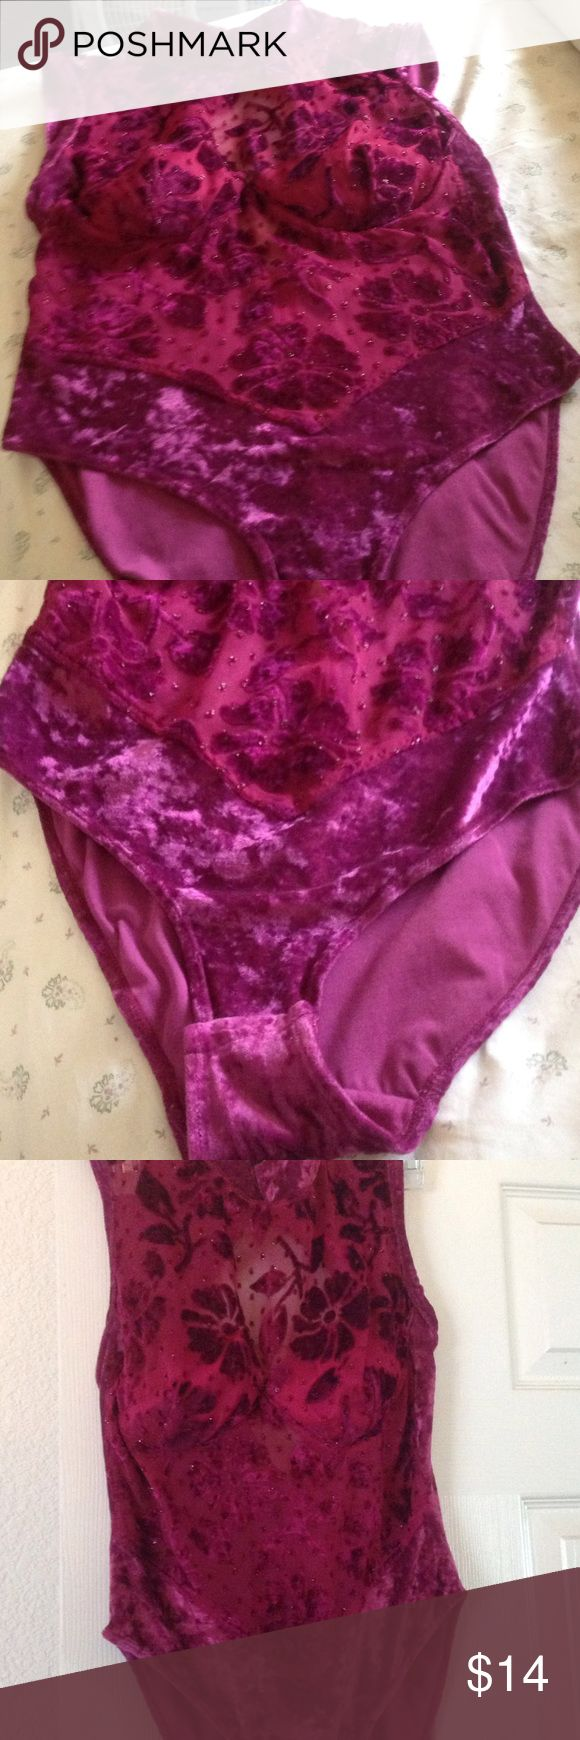 Purple body suit Sheer purple velour flowered body suit sexy cute. Victoria's Secret Intimates & Sleepwear Shapewear